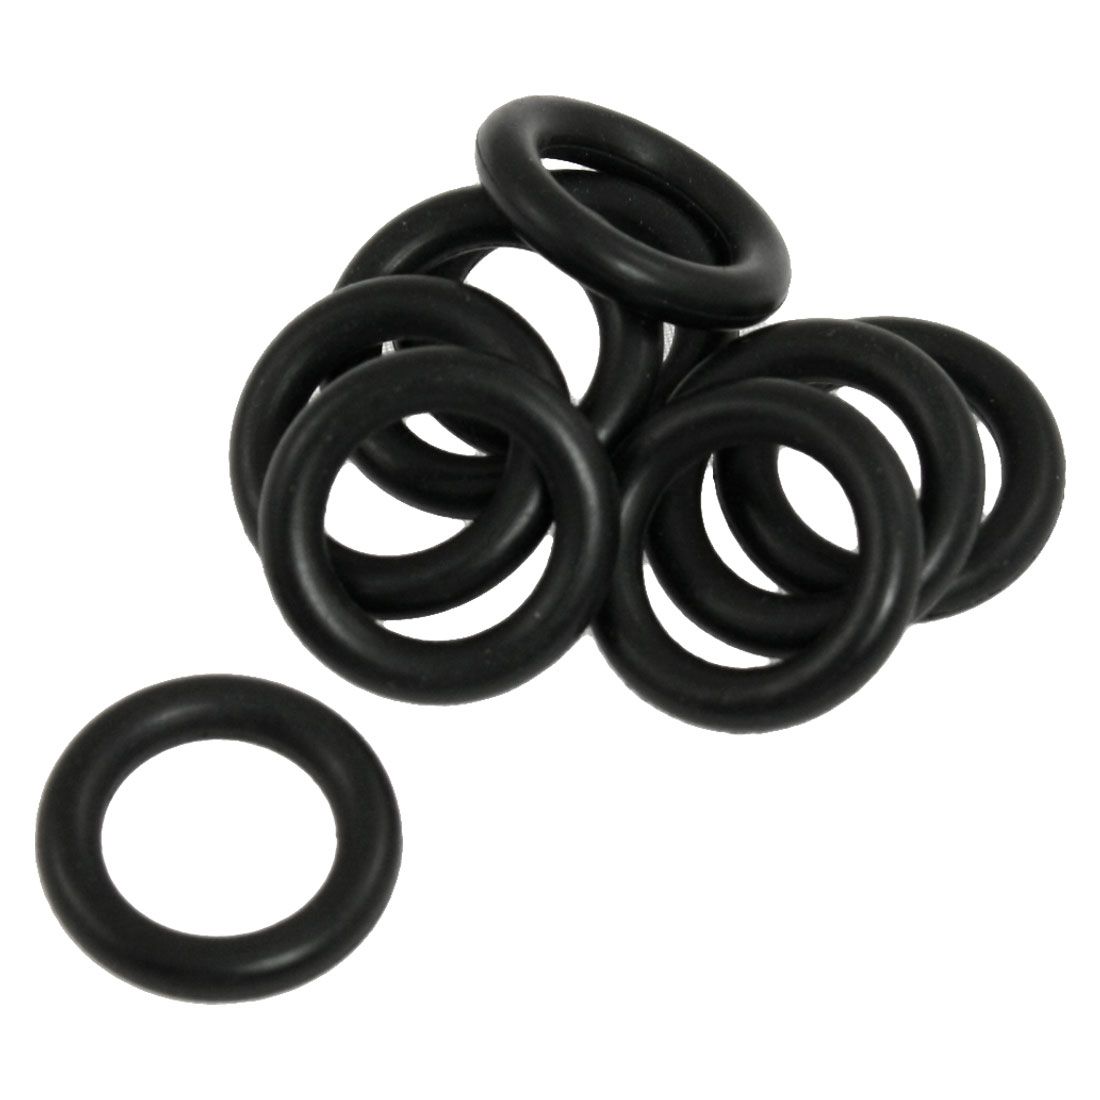 10 Pcs Black Nitrile Rubber Sealing O Ring Gaskets 14mm x 22mm x 4mm